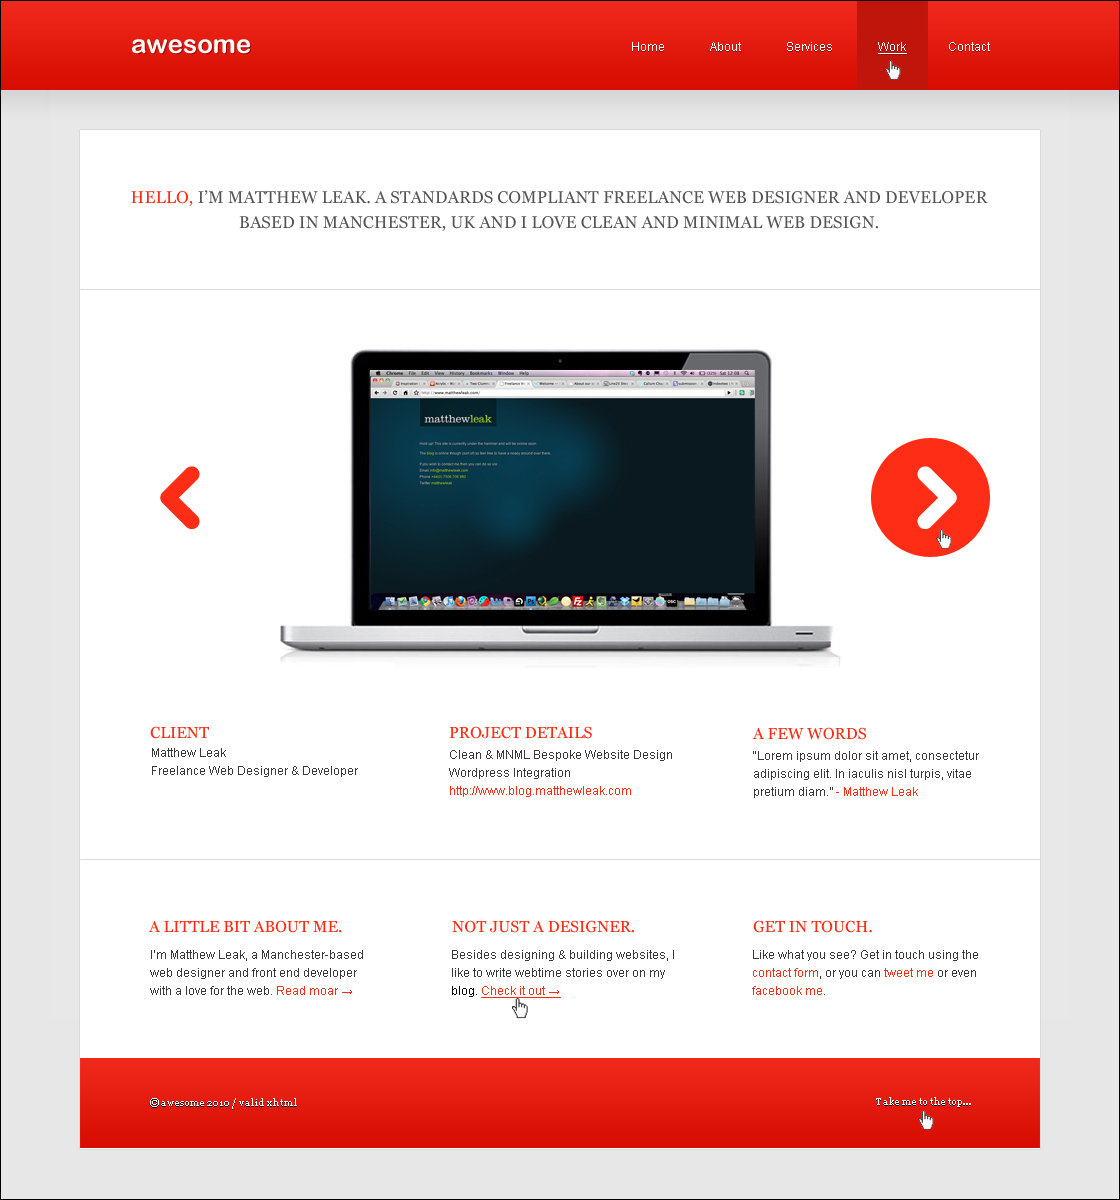 Awesome css designs - The Final Psd